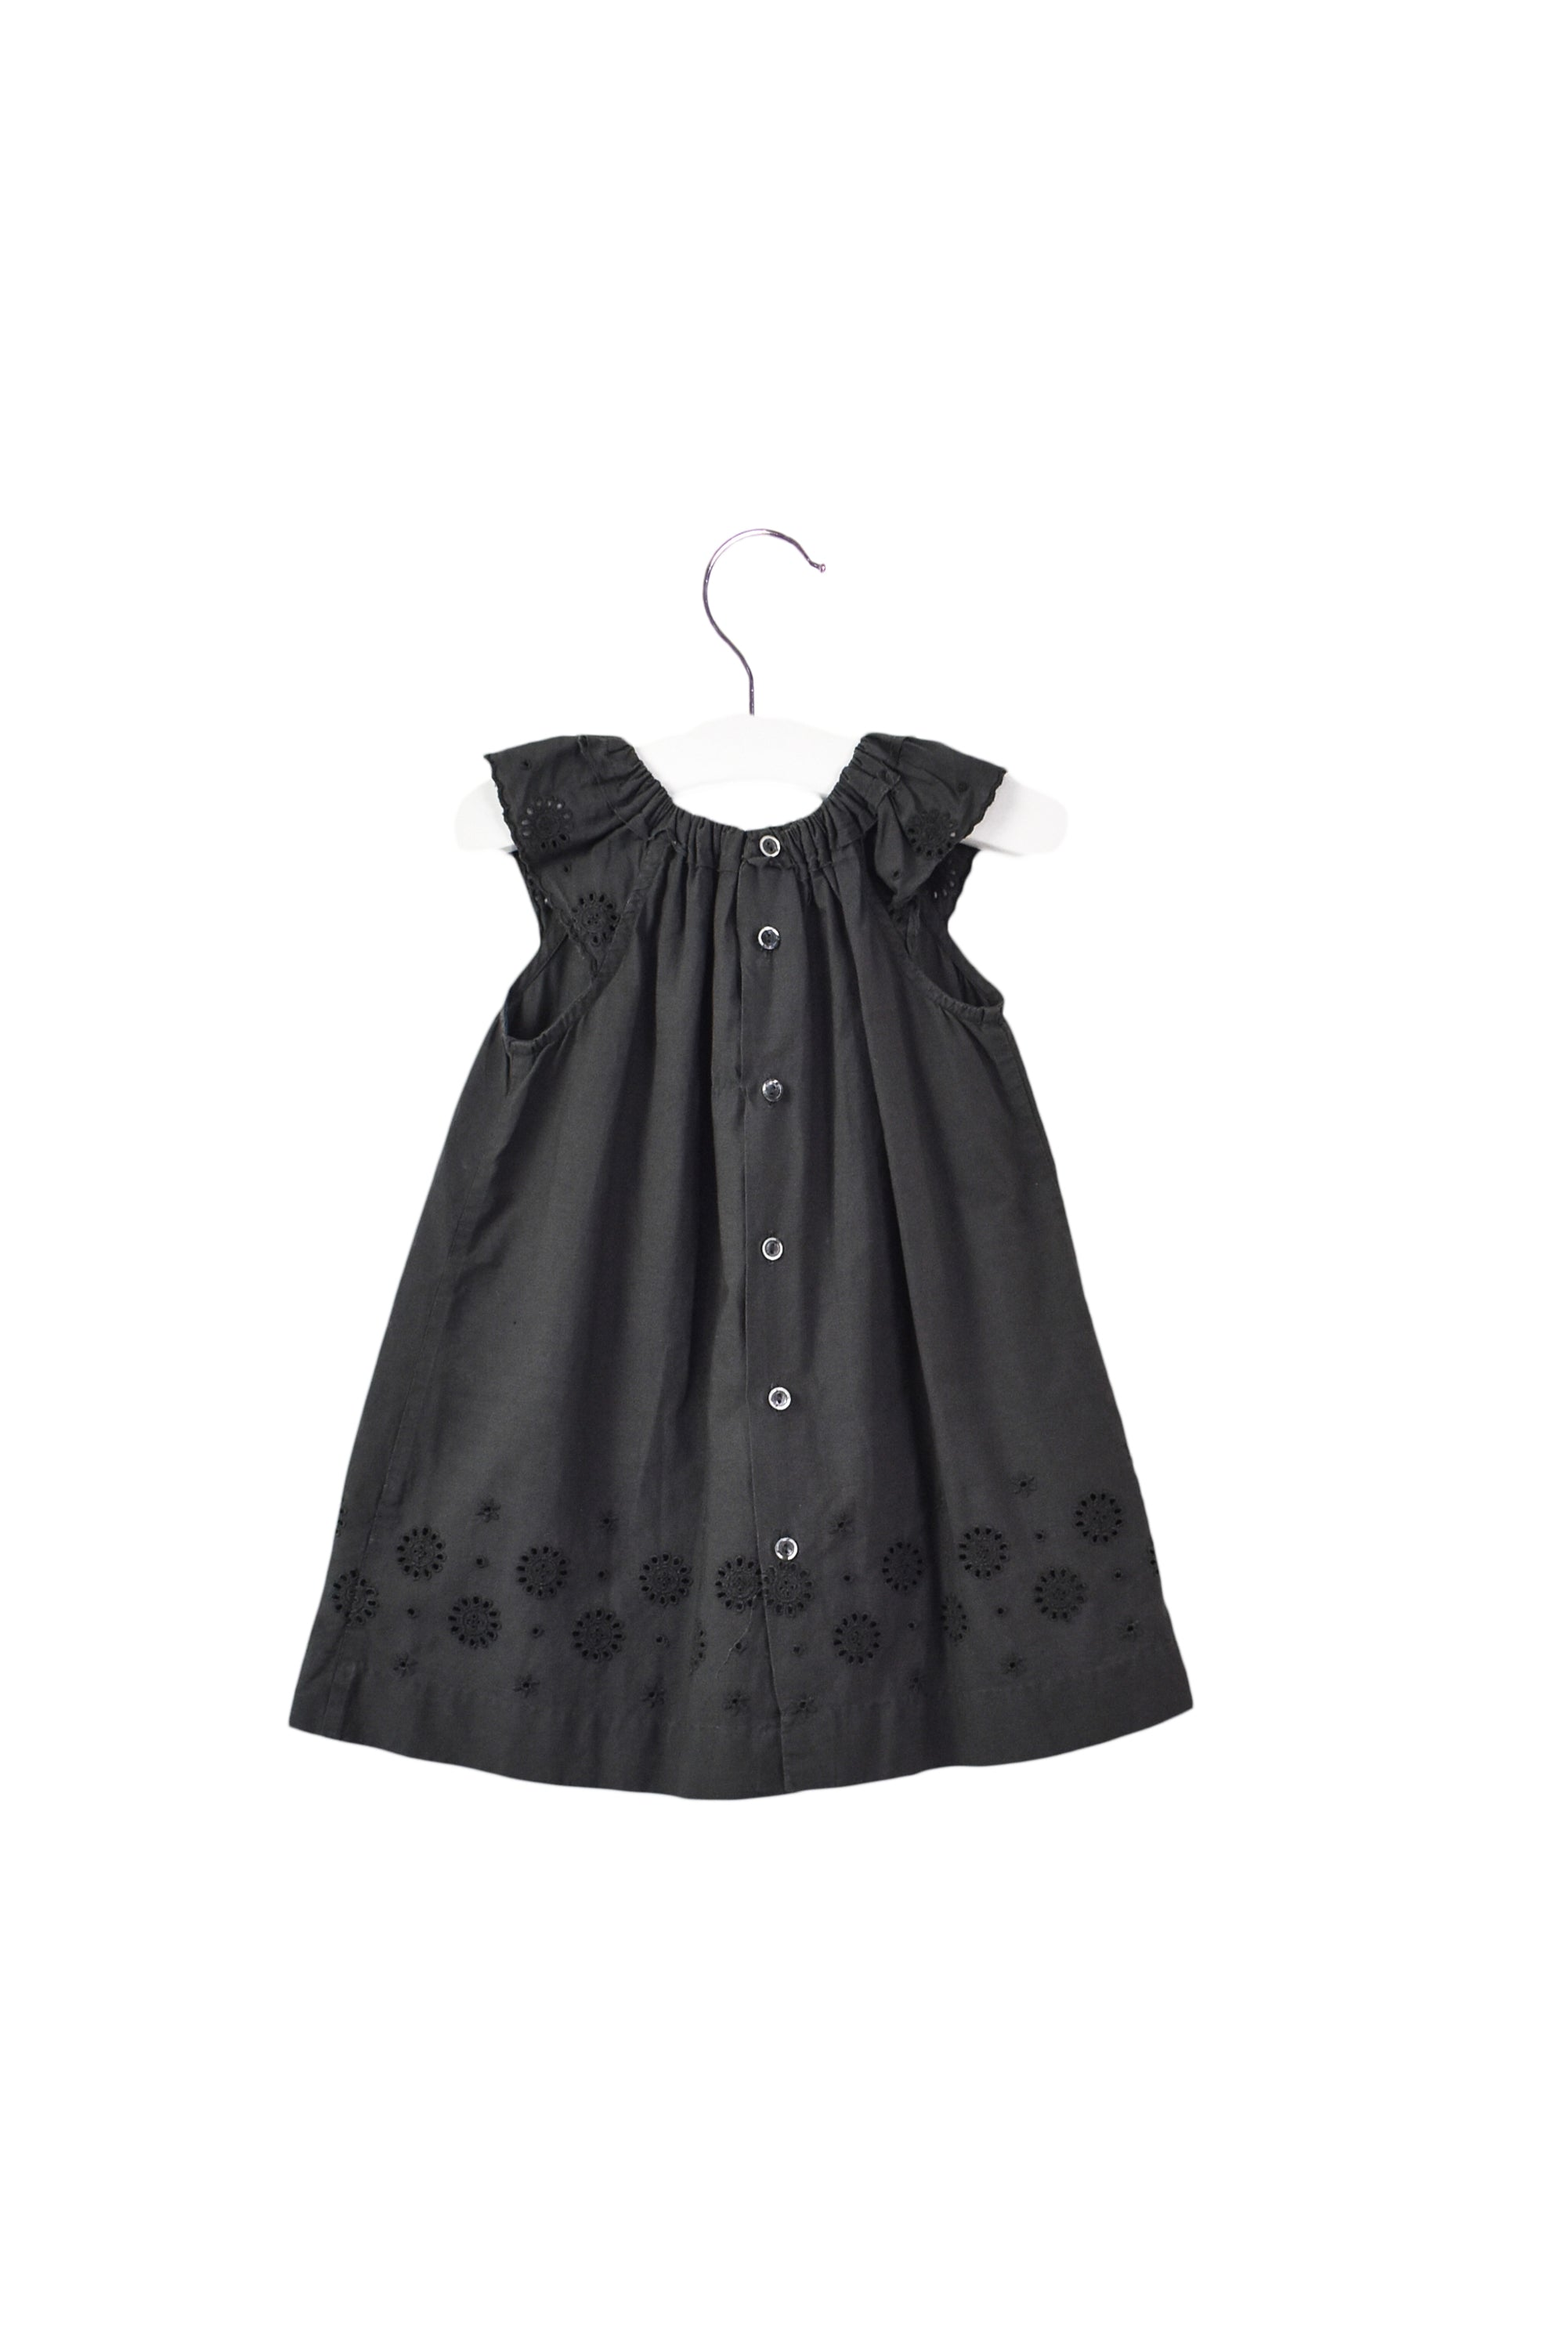 d6a82c494 10032541 Bonpoint Baby~Dress 12M at Retykle